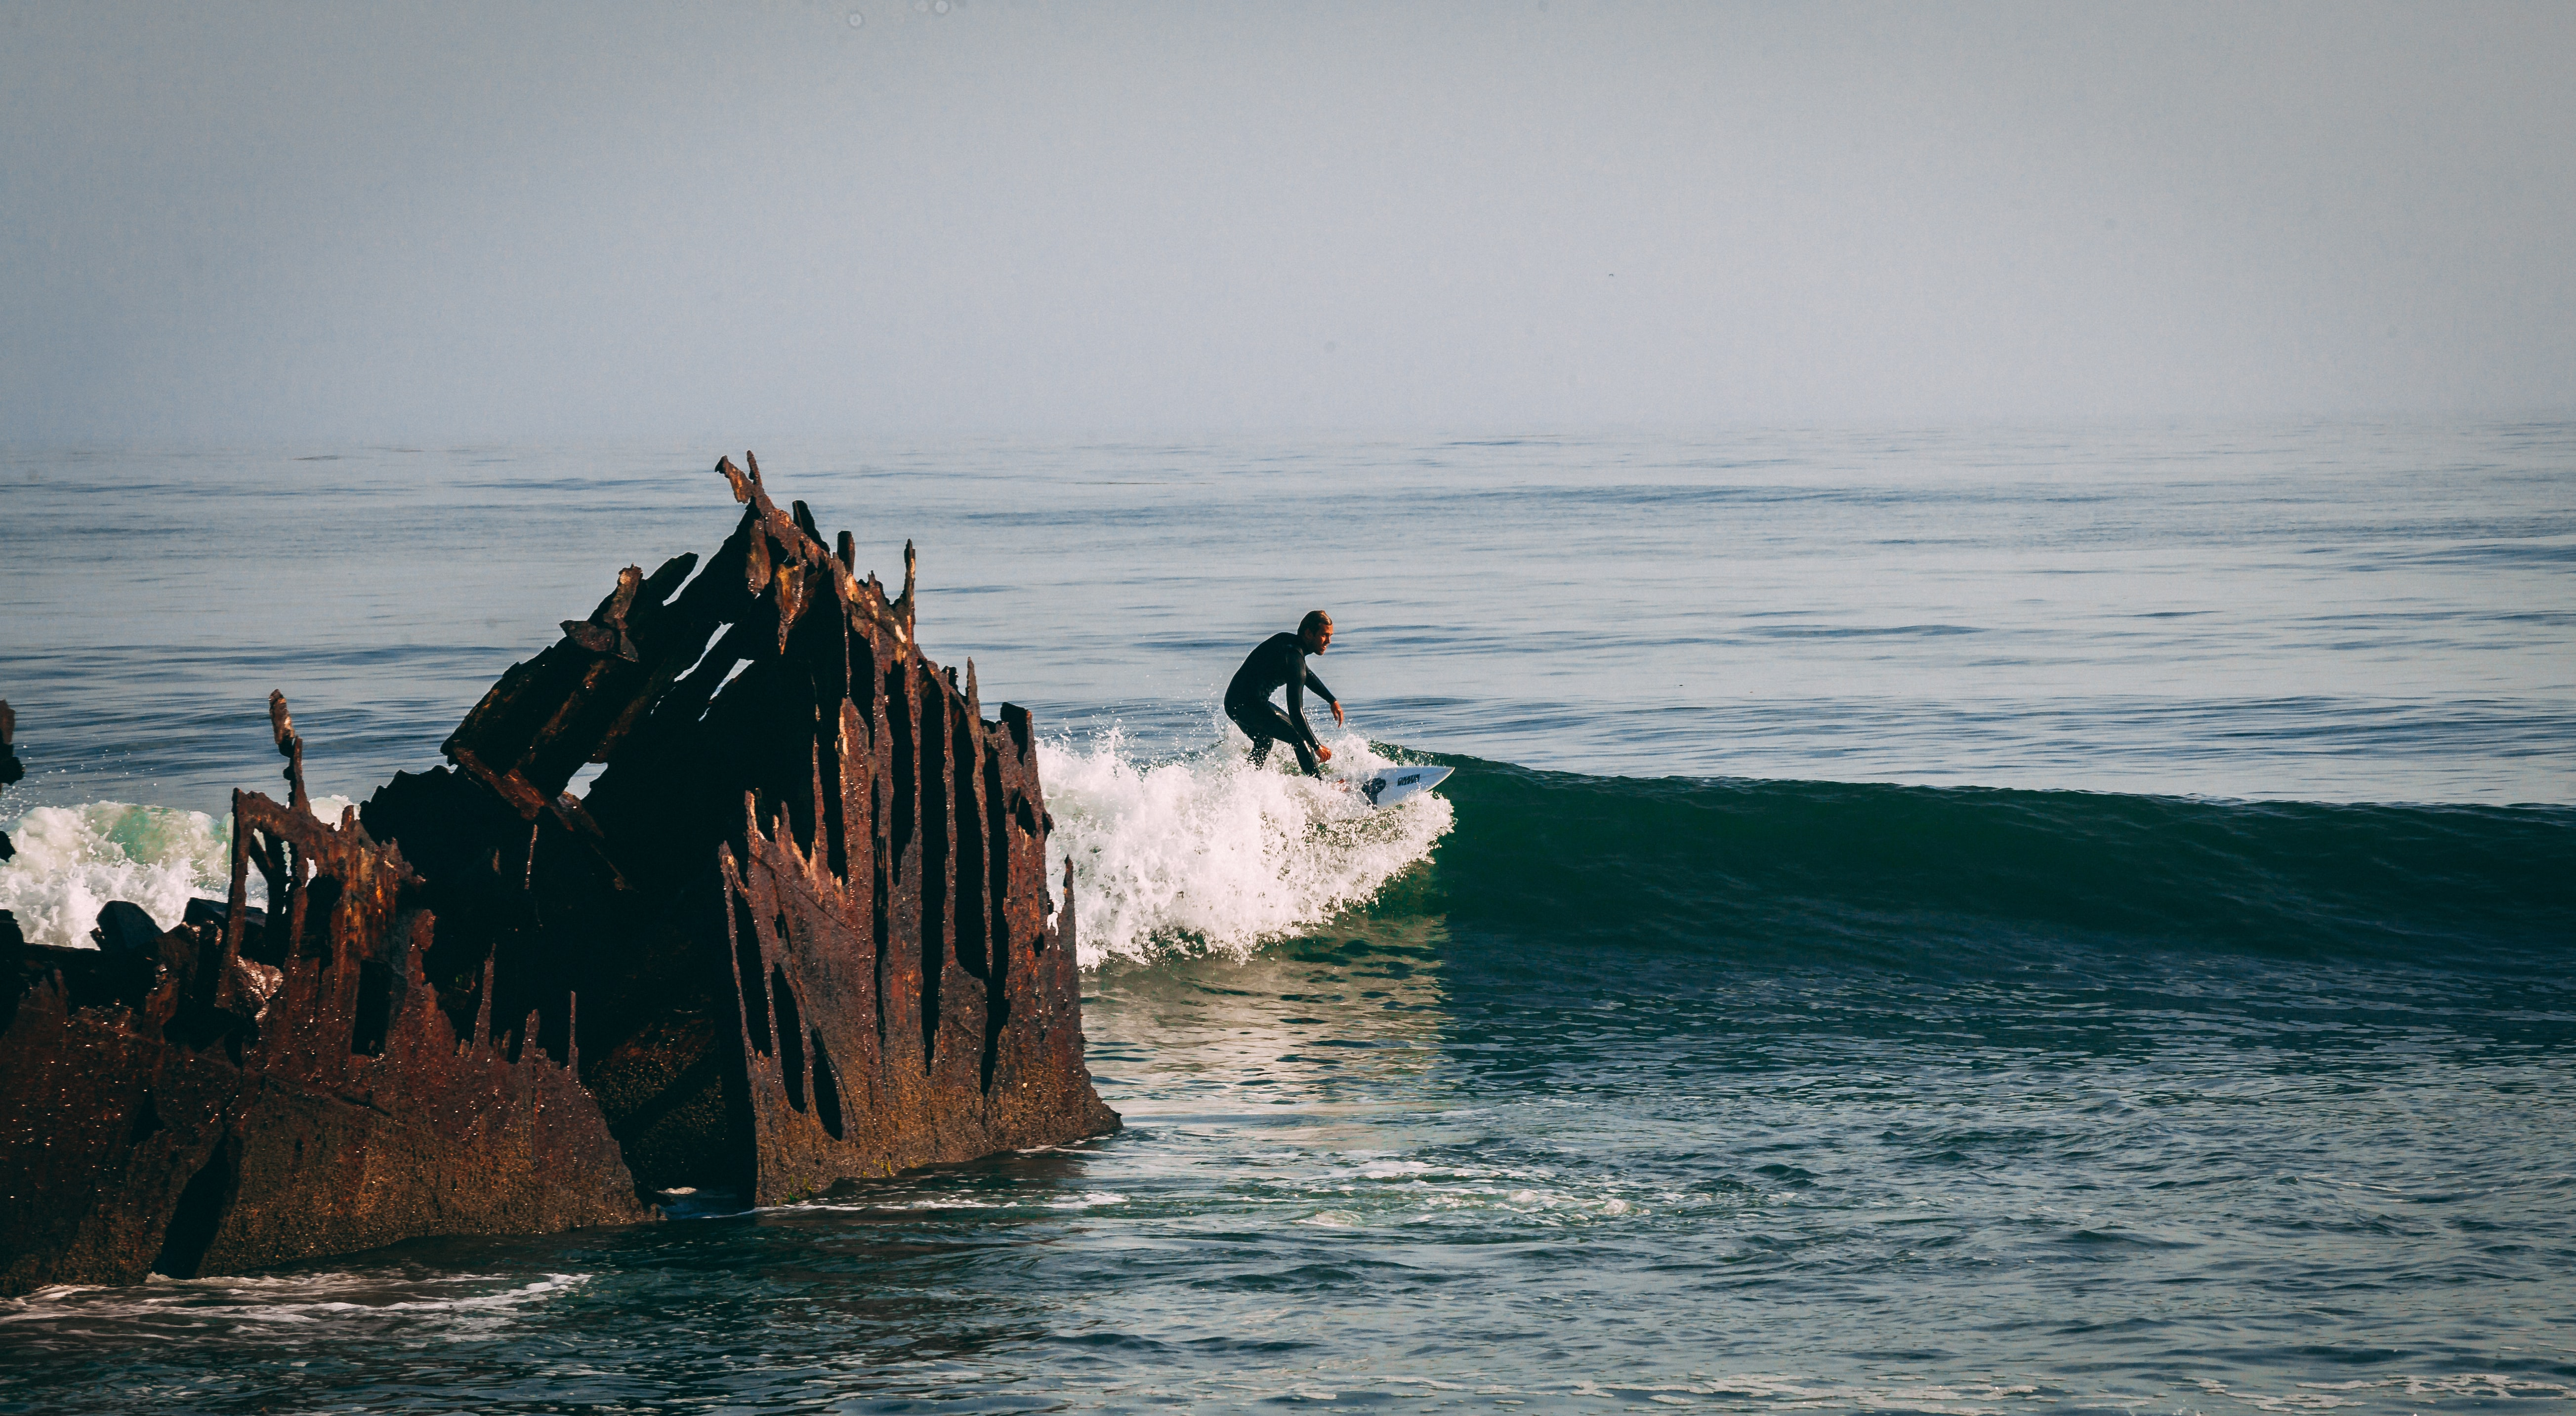 man surfing the waves during day